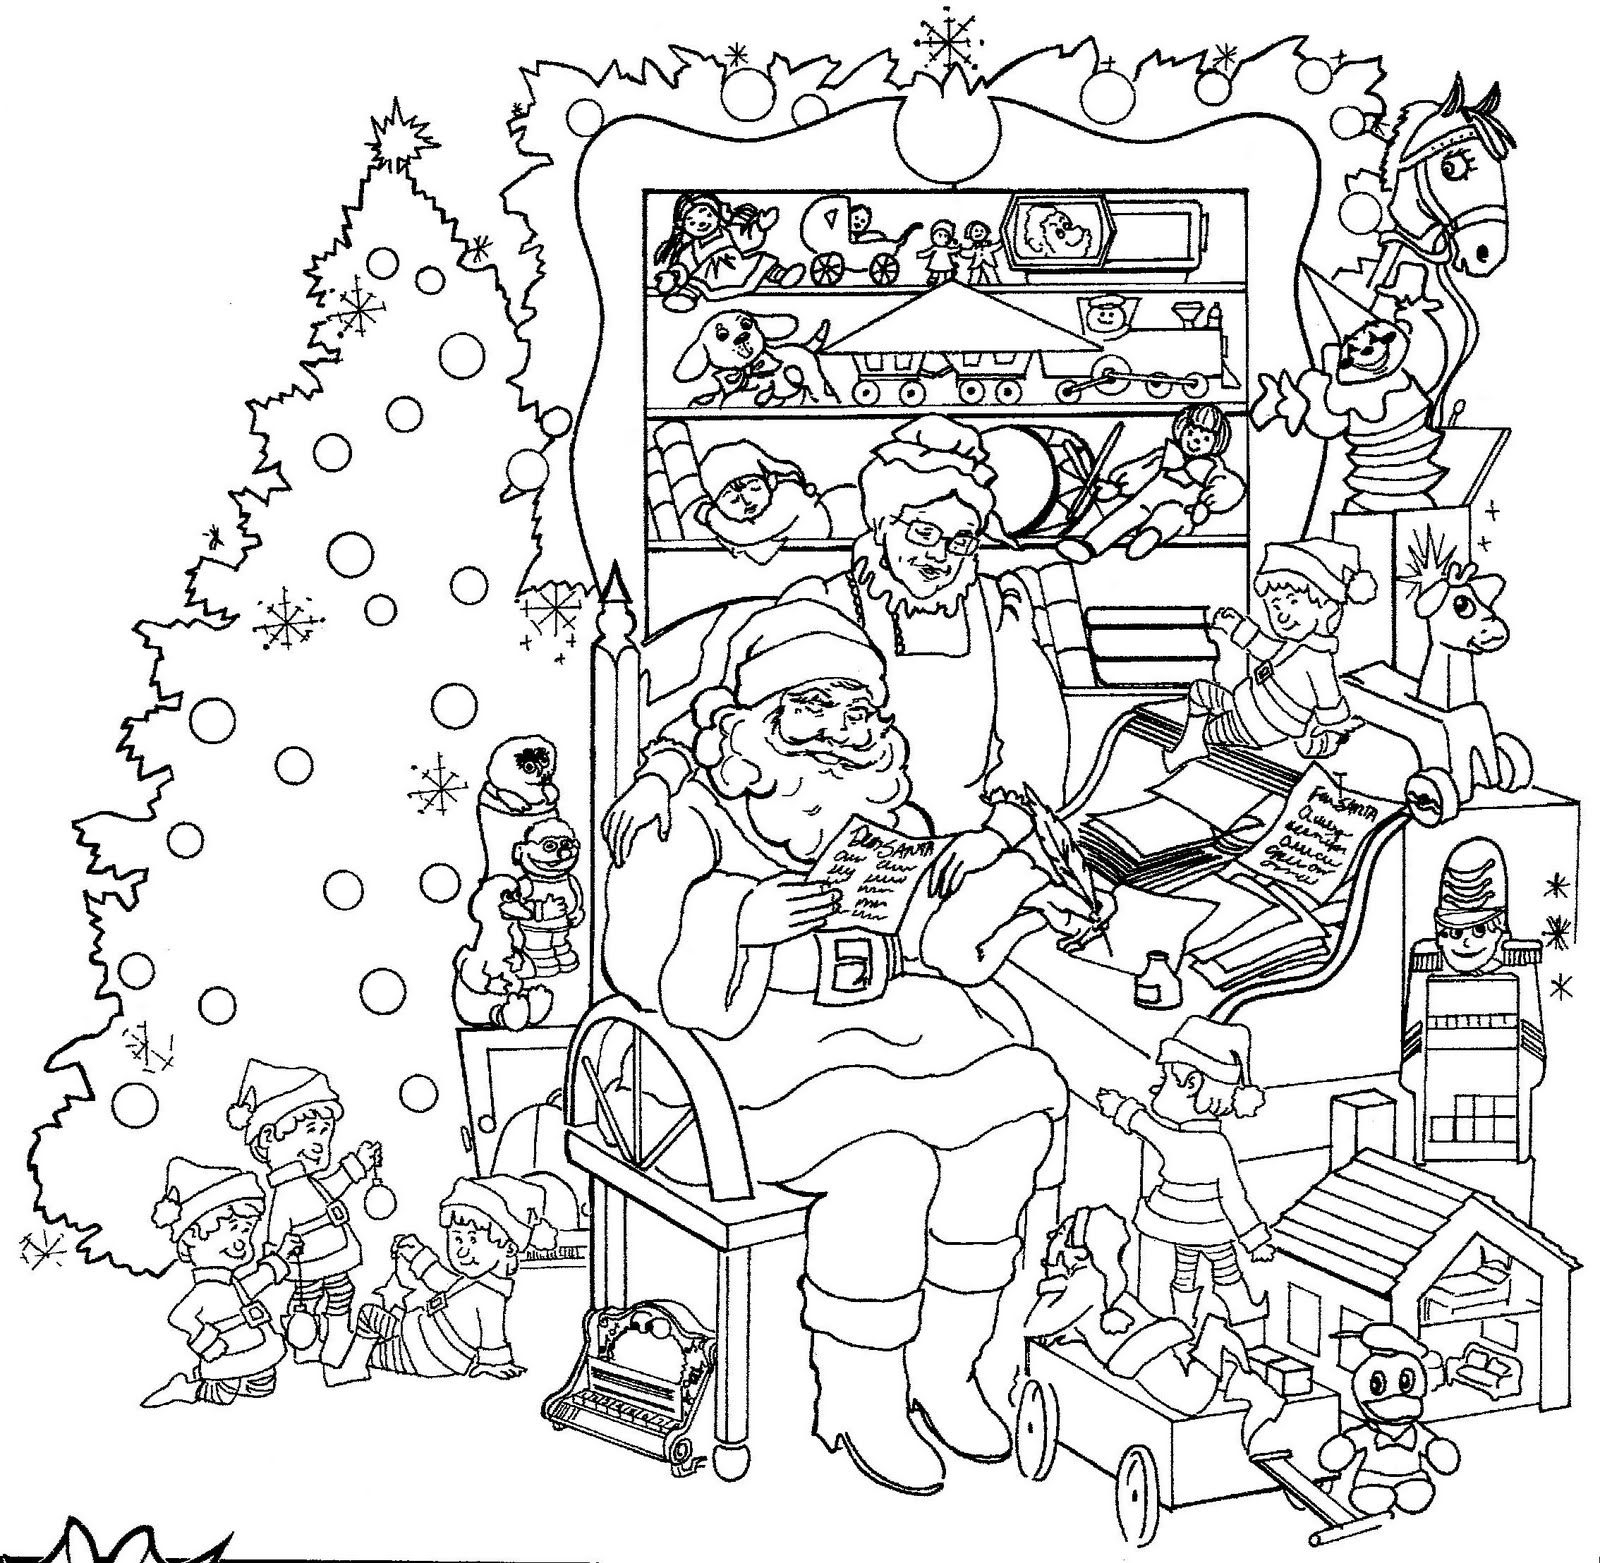 Kcngpbzdi Christmas Coloring Pages Printablereeor Kids To